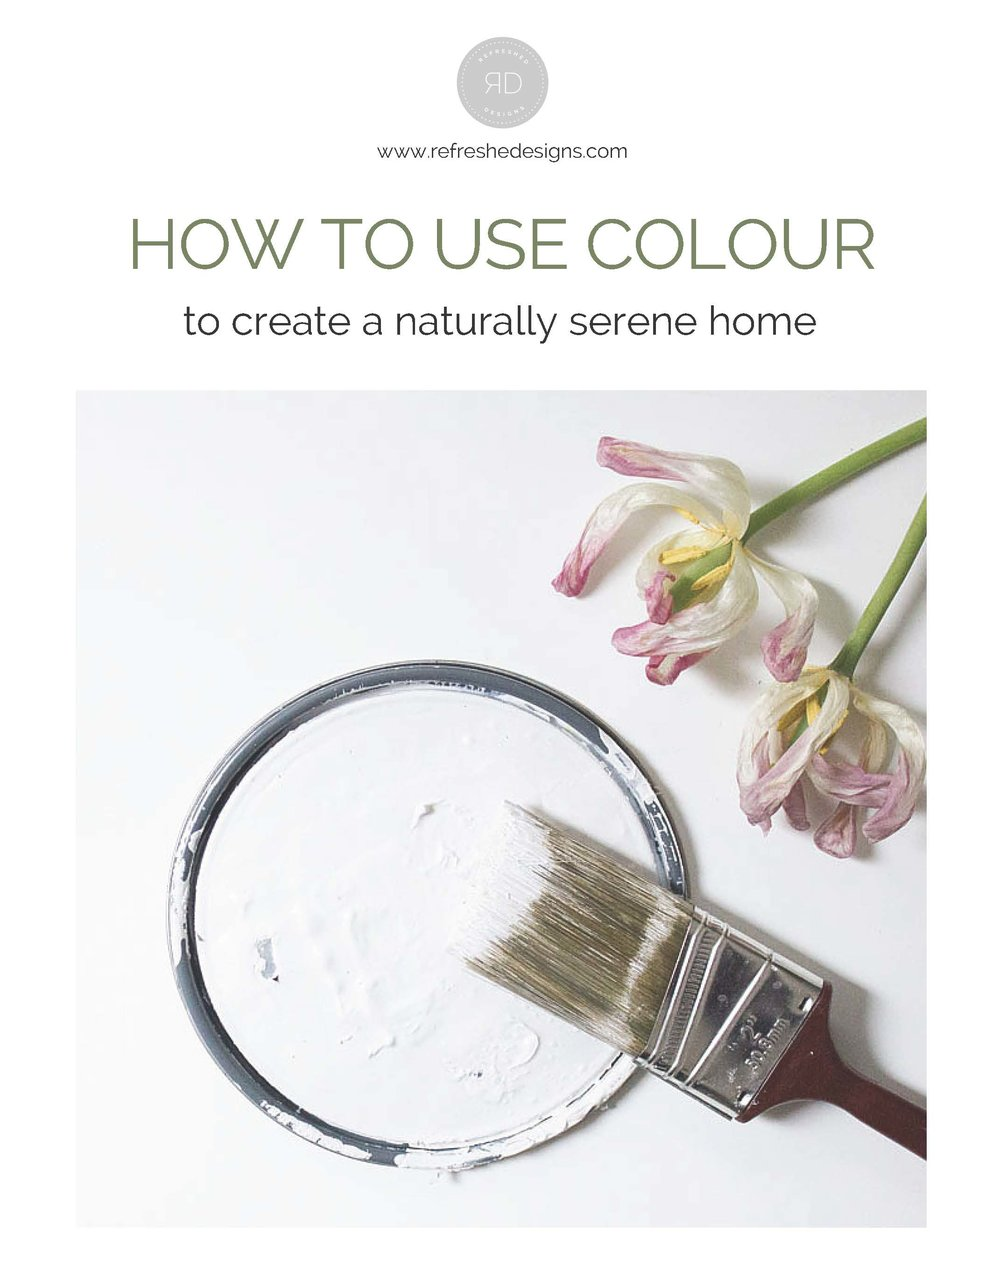 Free home decor resource guides - how to use colour to create a naturally serene home